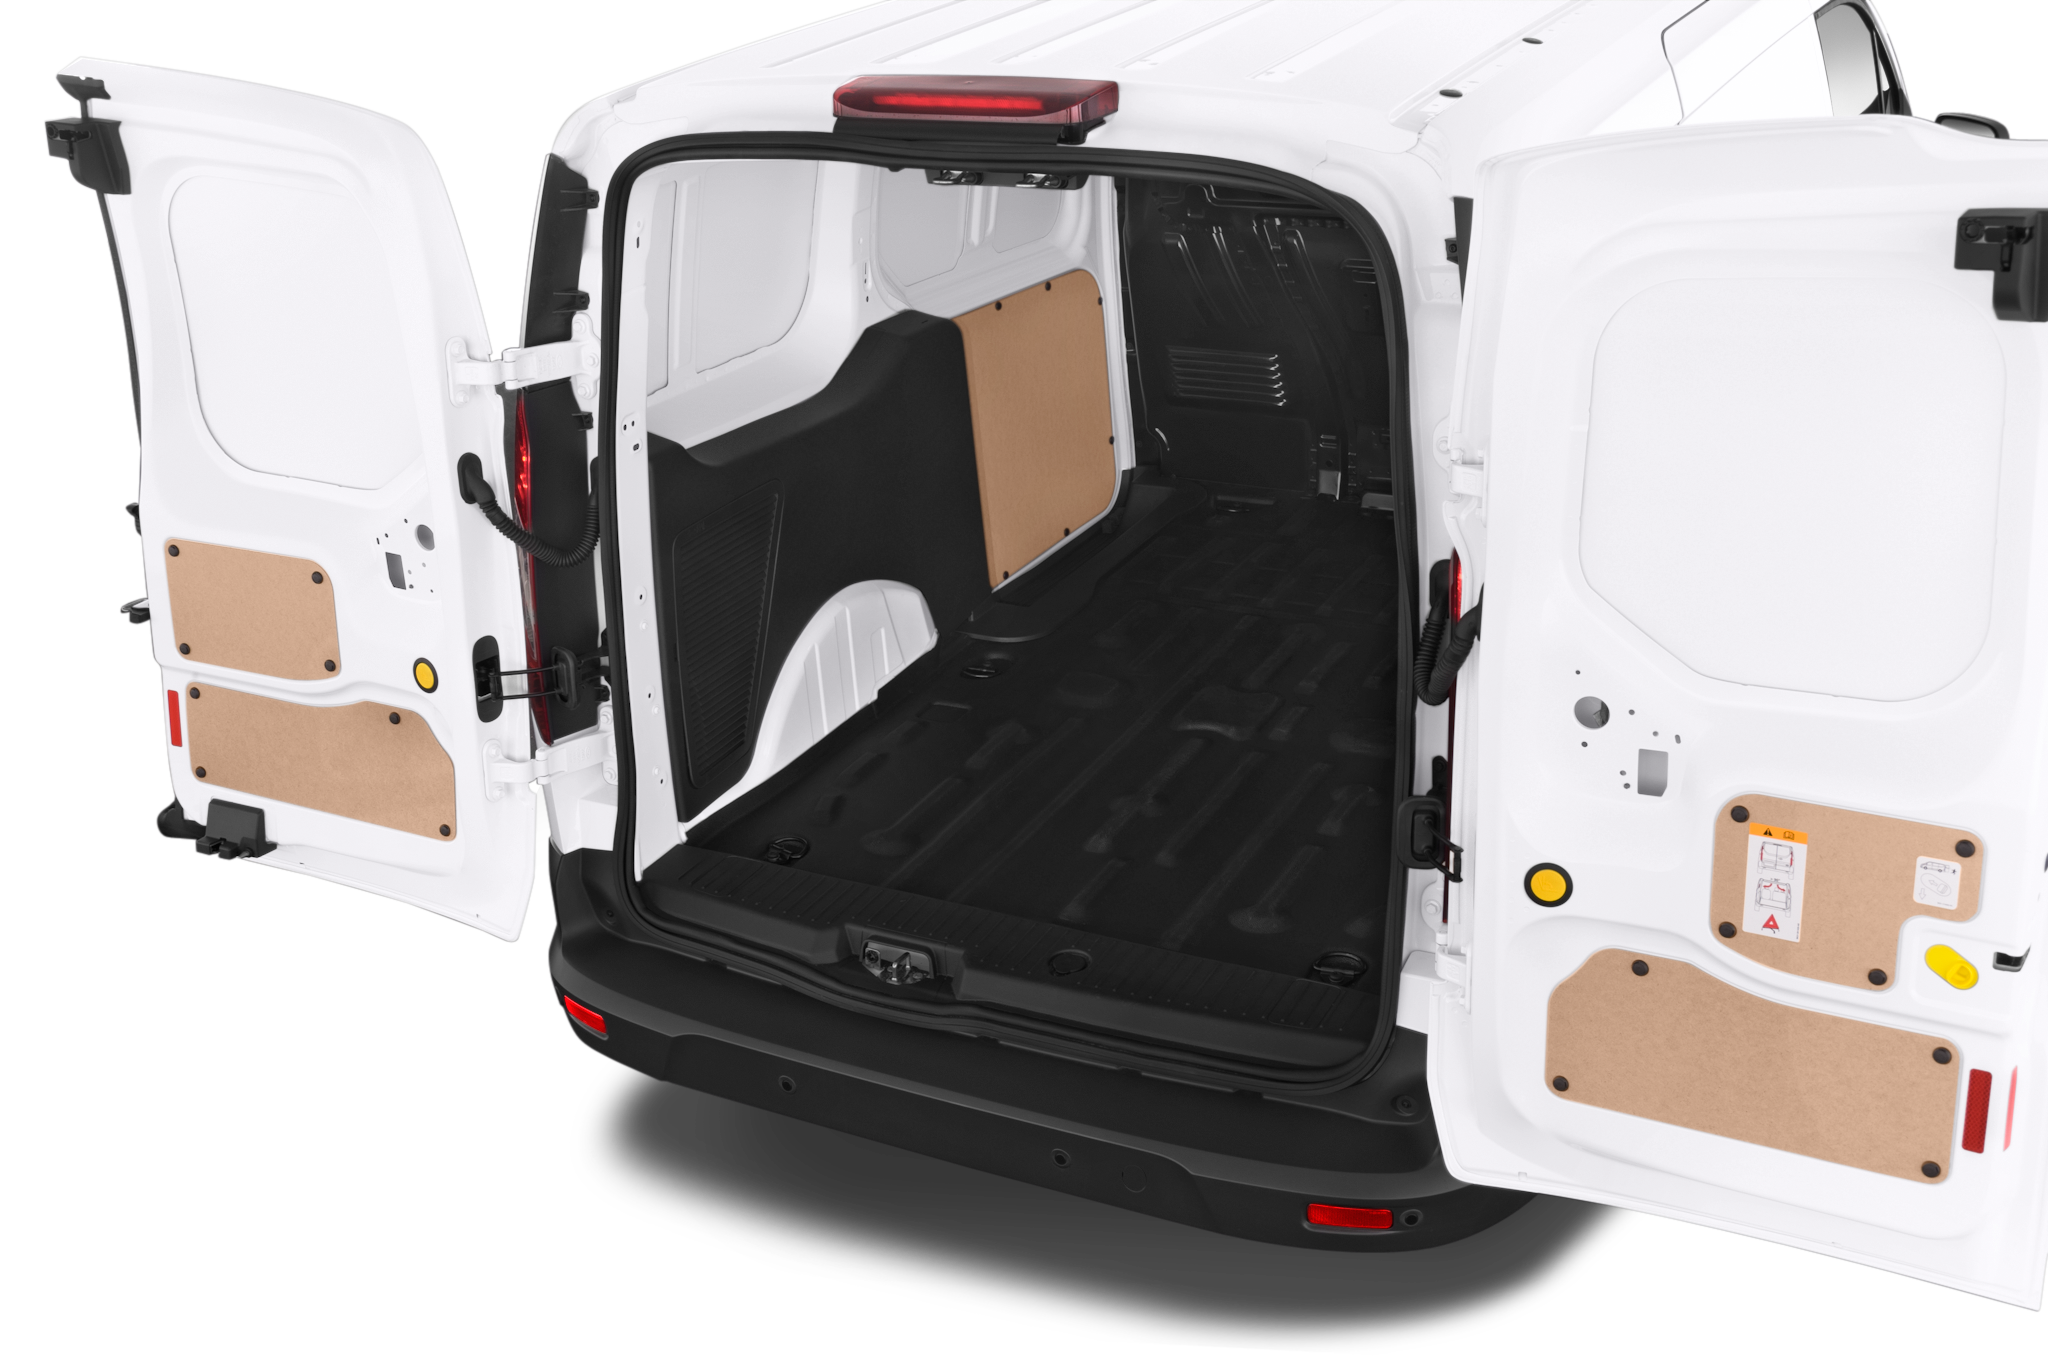 Ford transit connect vehicle review arval uk ltd - Transit connect interior dimensions ...